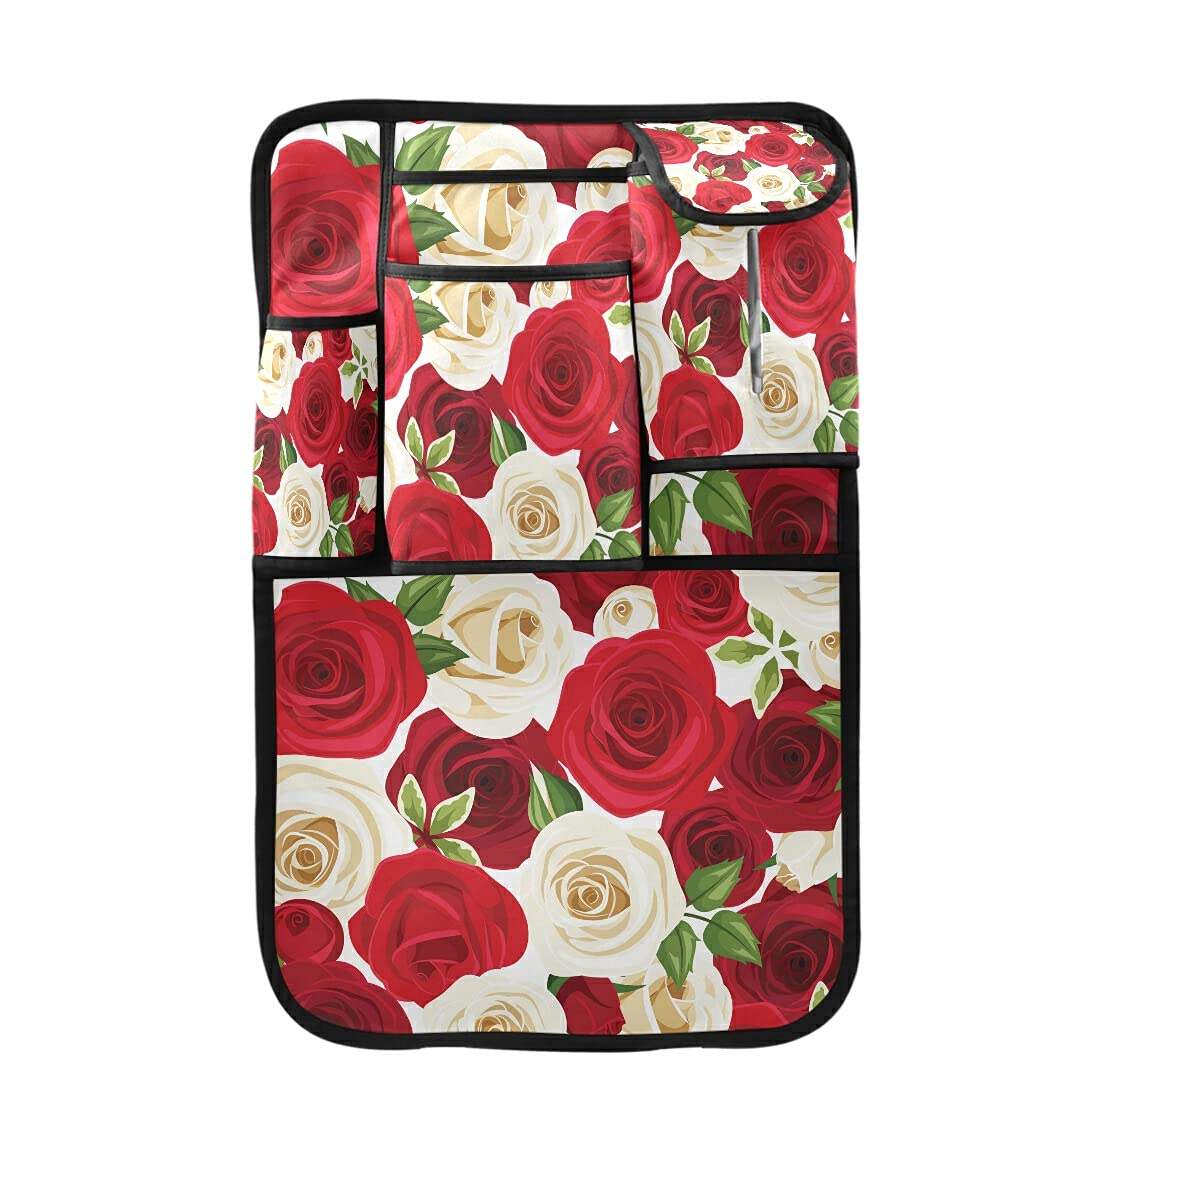 Car Organizer Back Superlatite Seat Red Discount is also underway White Roses Backseat And Organi